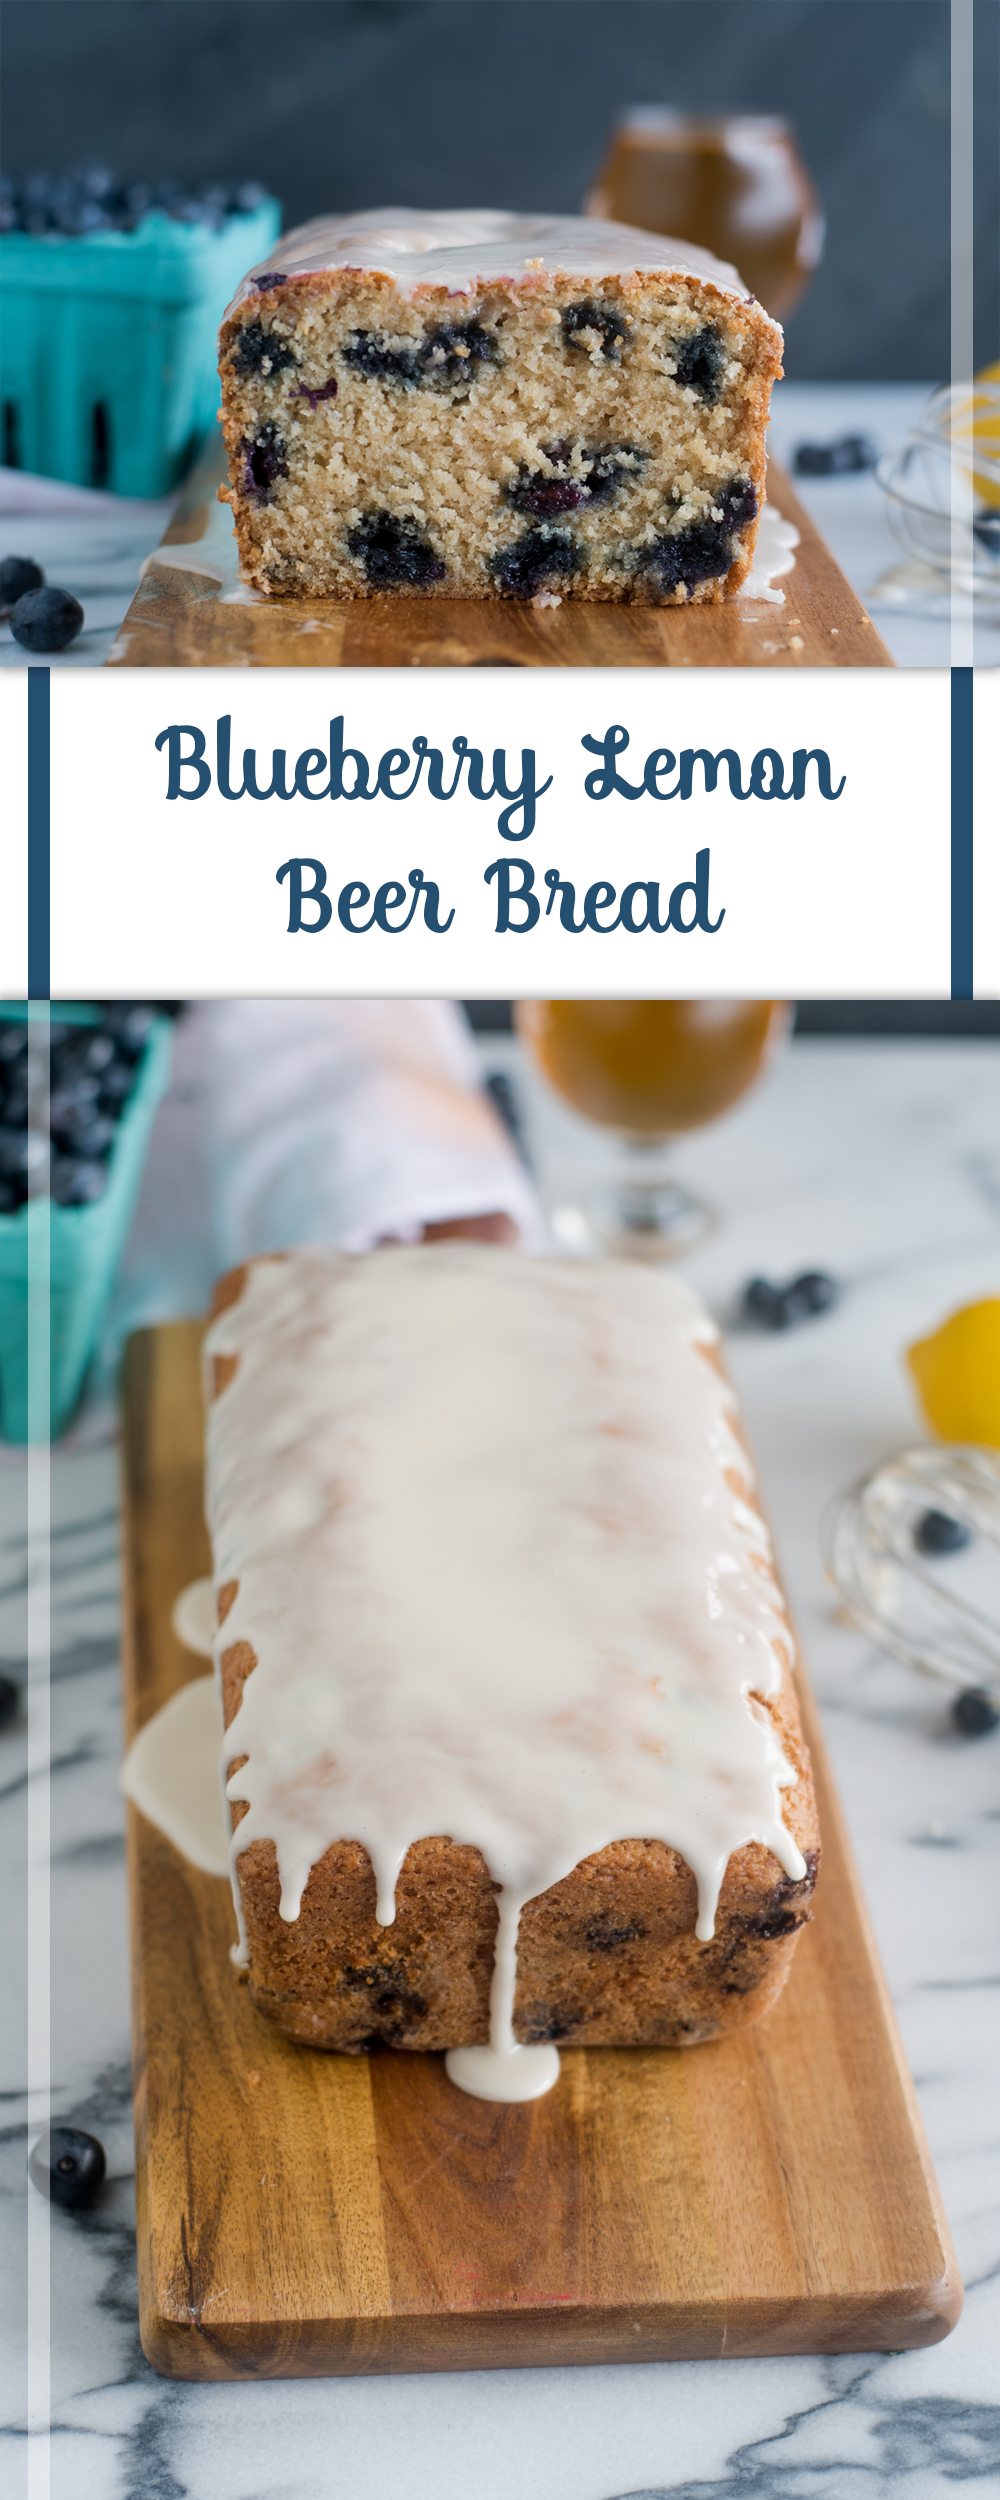 Blueberry Lemon Beer Bread topped with a lemon glaze. It is light, tender and citrusy.